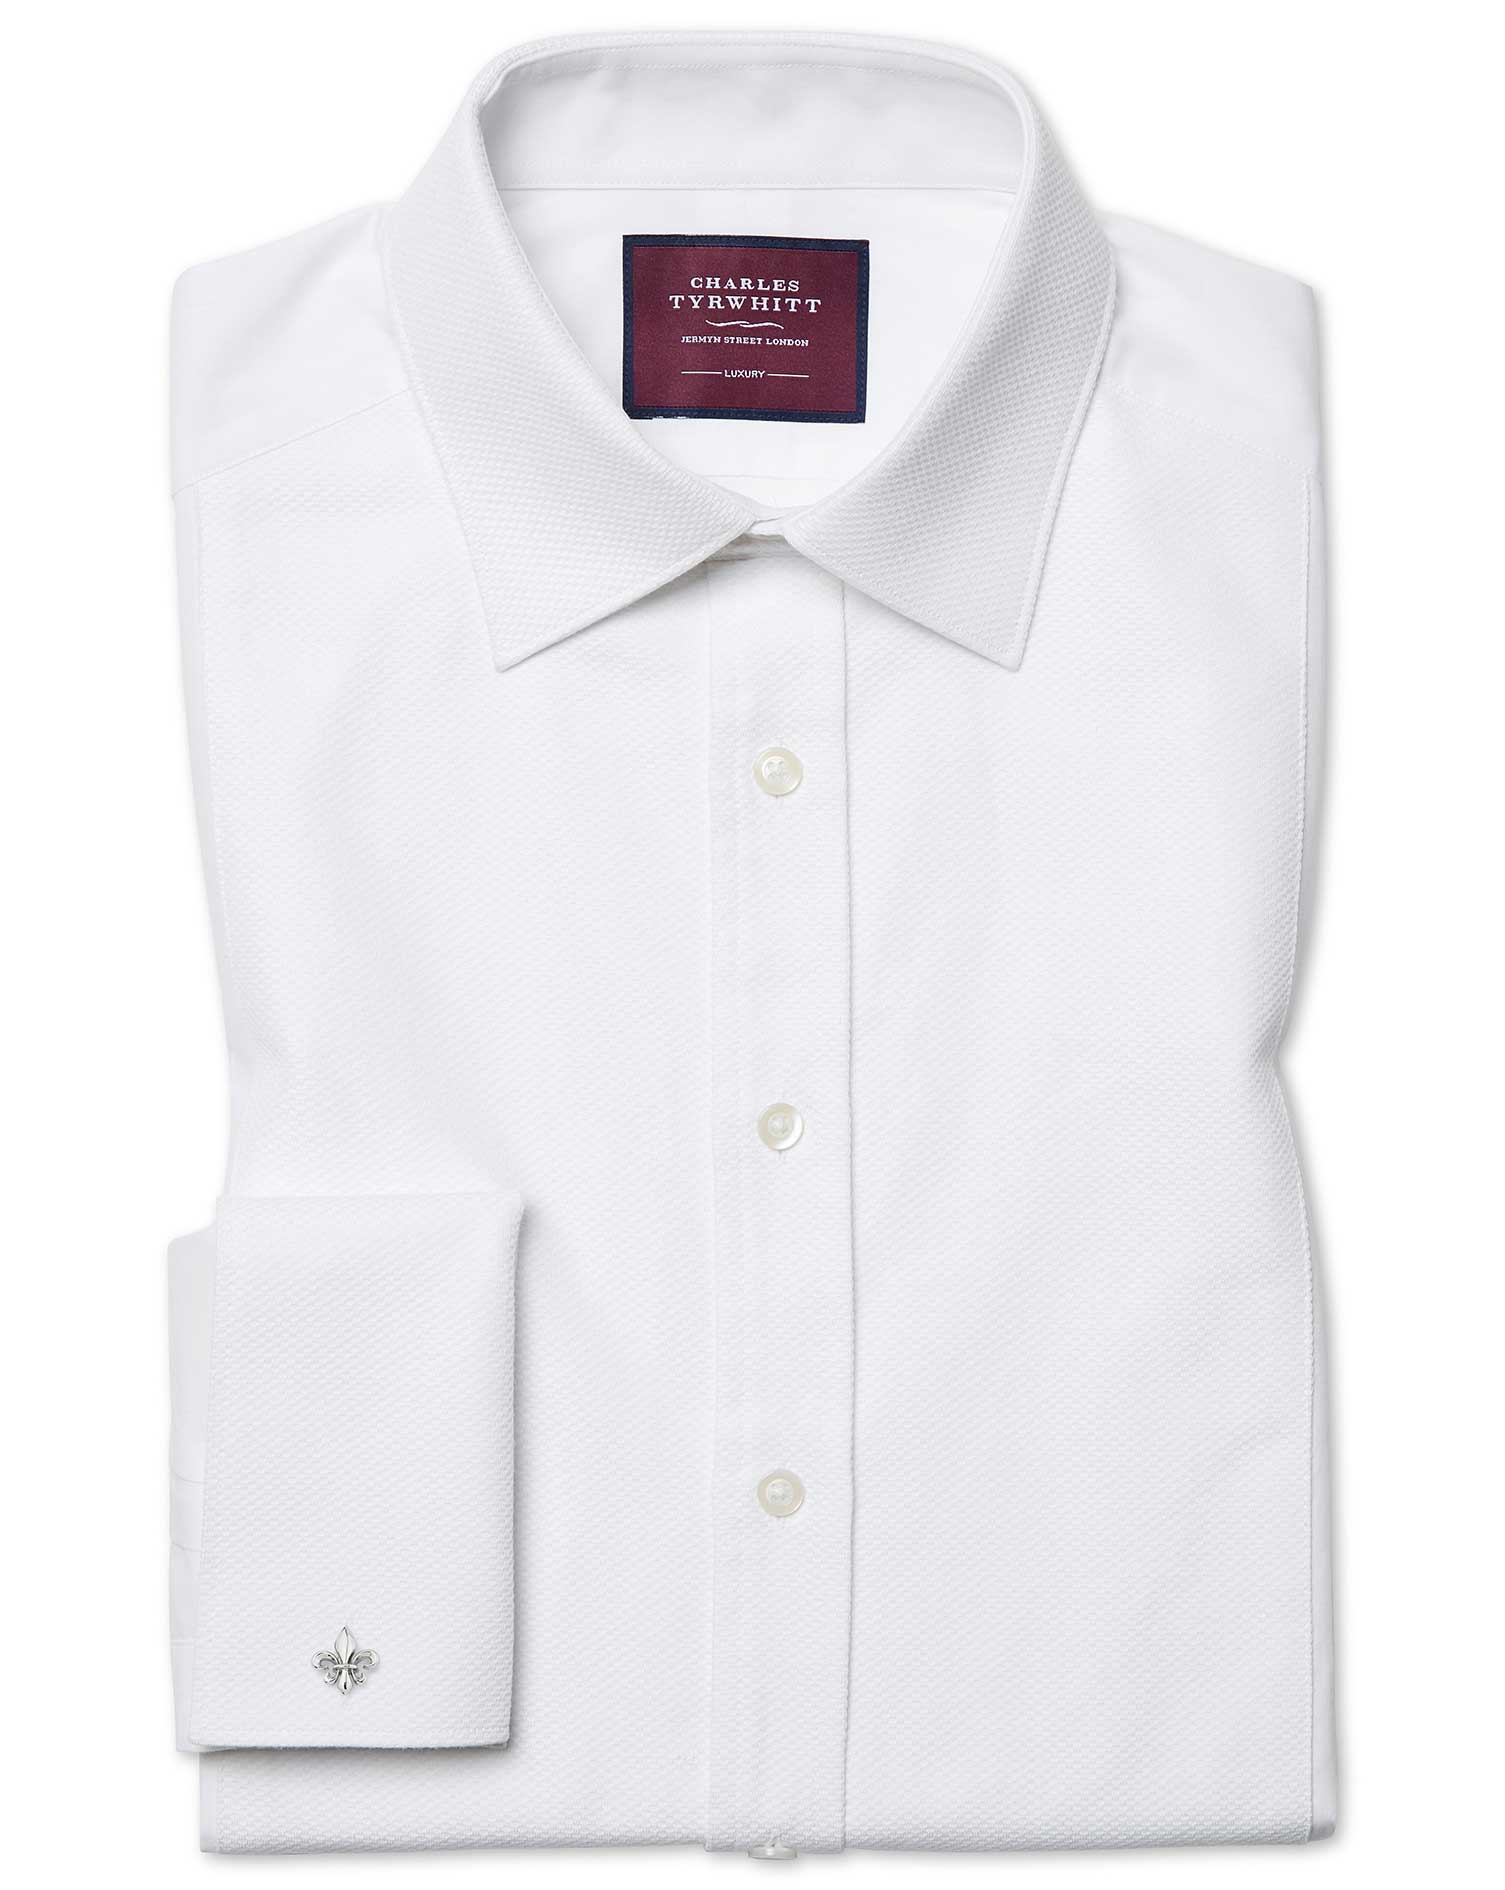 Extra Slim Fit Luxury Marcella Bib Front White Evening Egyptian Cotton Formal Shirt Double Cuff Size